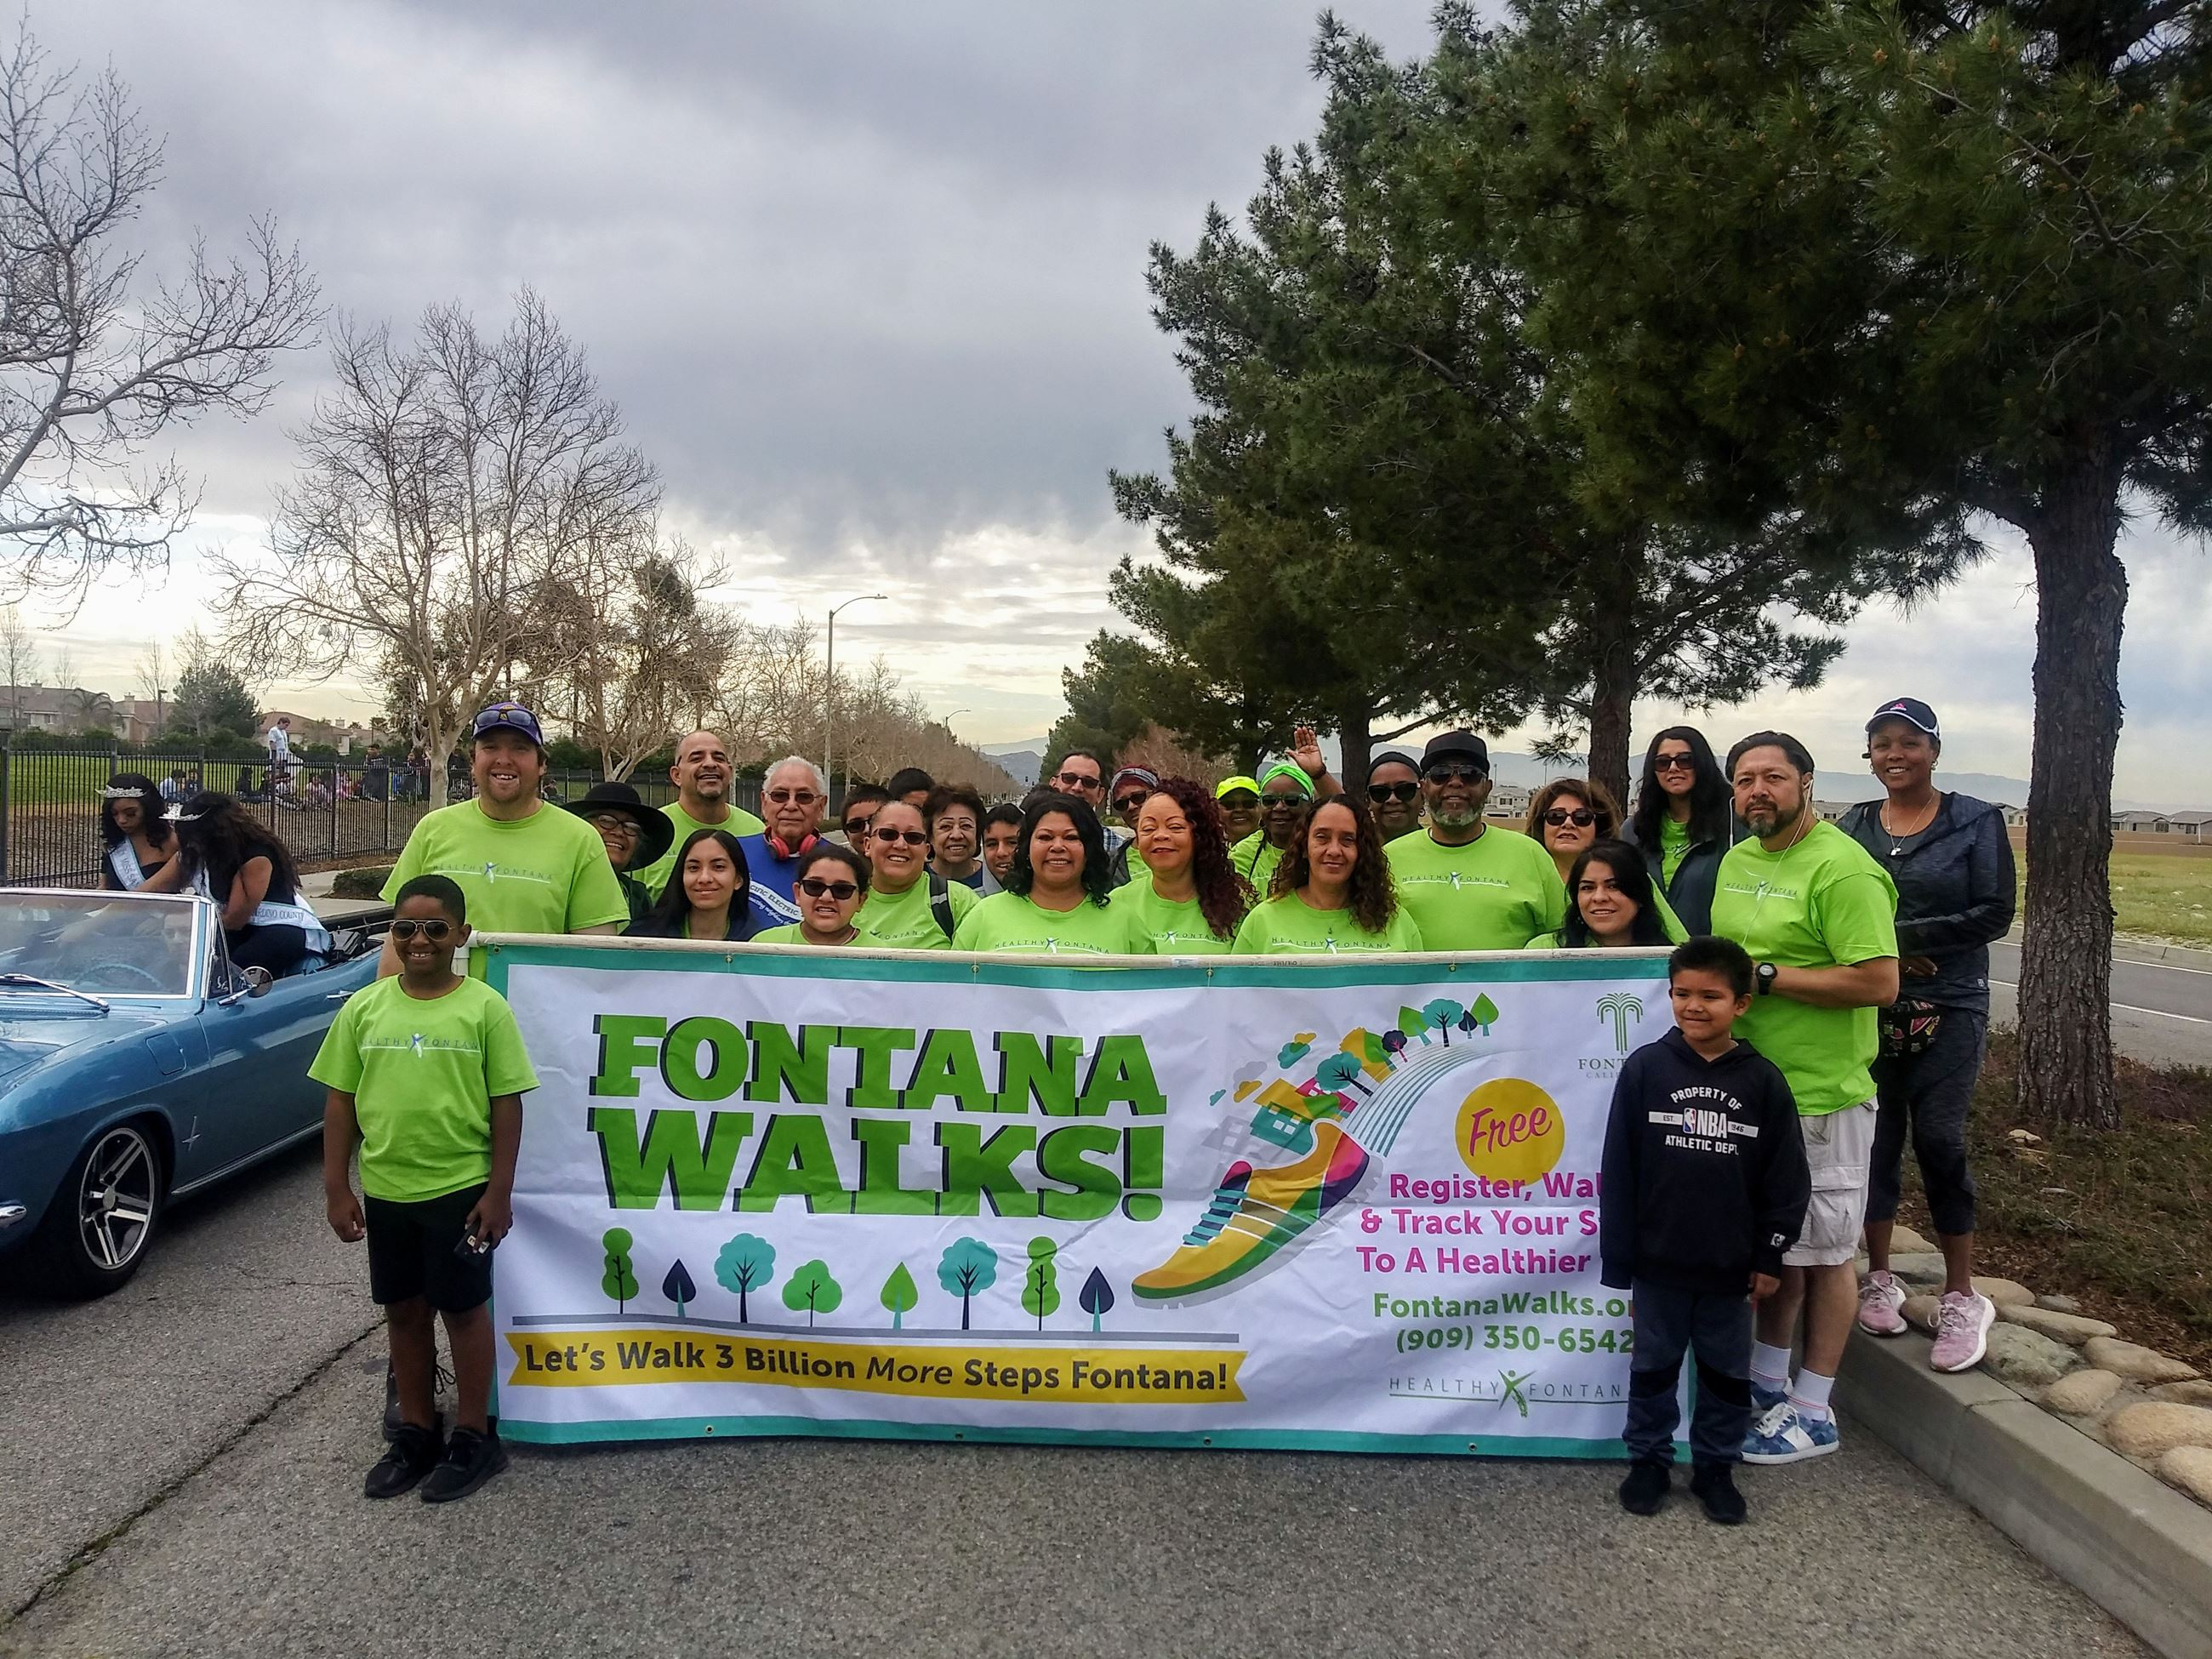 Fontana Walks parade participants holding banner on cloudy day